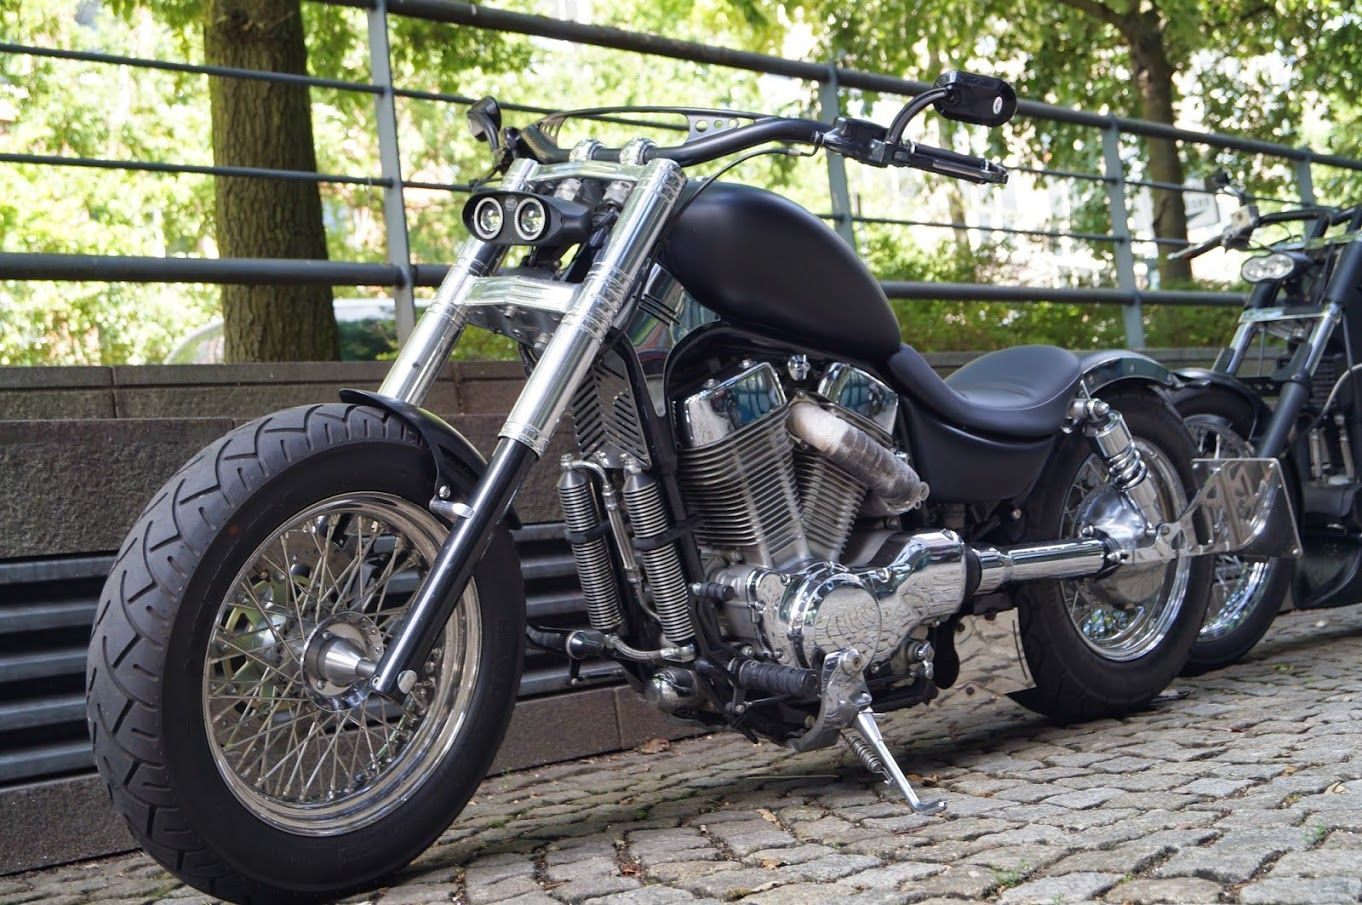 Some impressions from #HarleyDays in #Hamburg #Germany in 2014 | #motorcycle #custom #moto #chopper #custom #bike photography by www.BlickeDeeler.de | You want more? www.facebook.com/BlickeDeeler